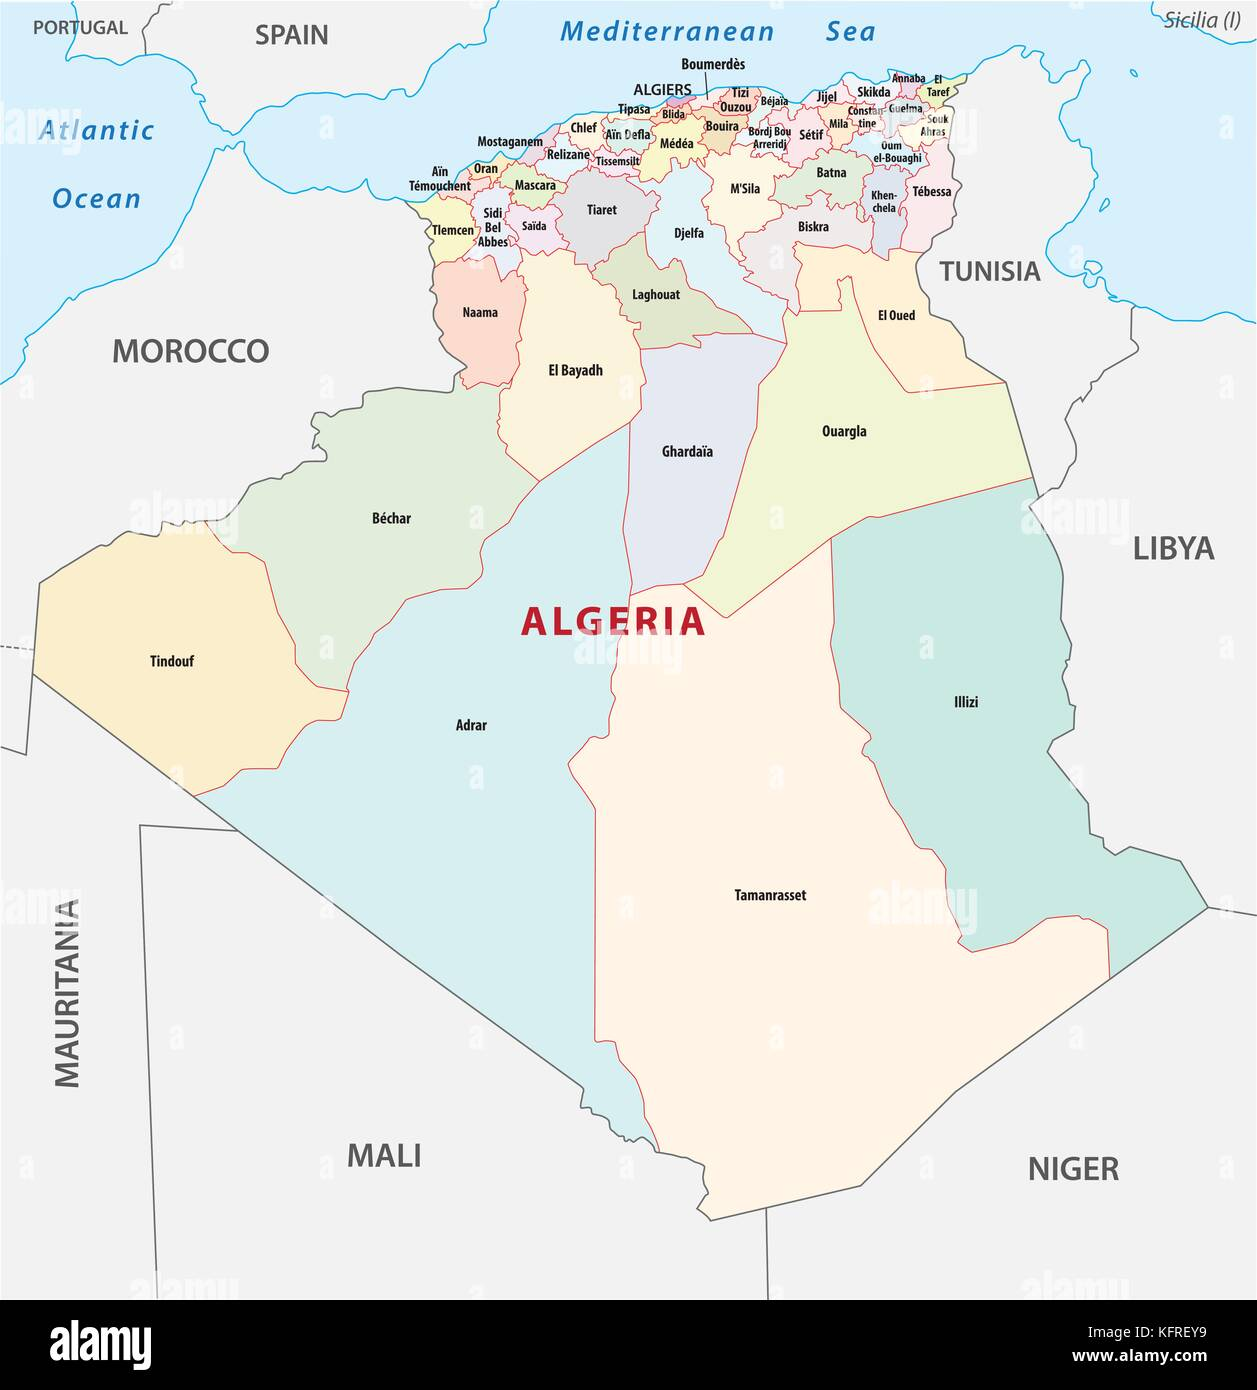 algeria administrative, political and vector map - Stock Image